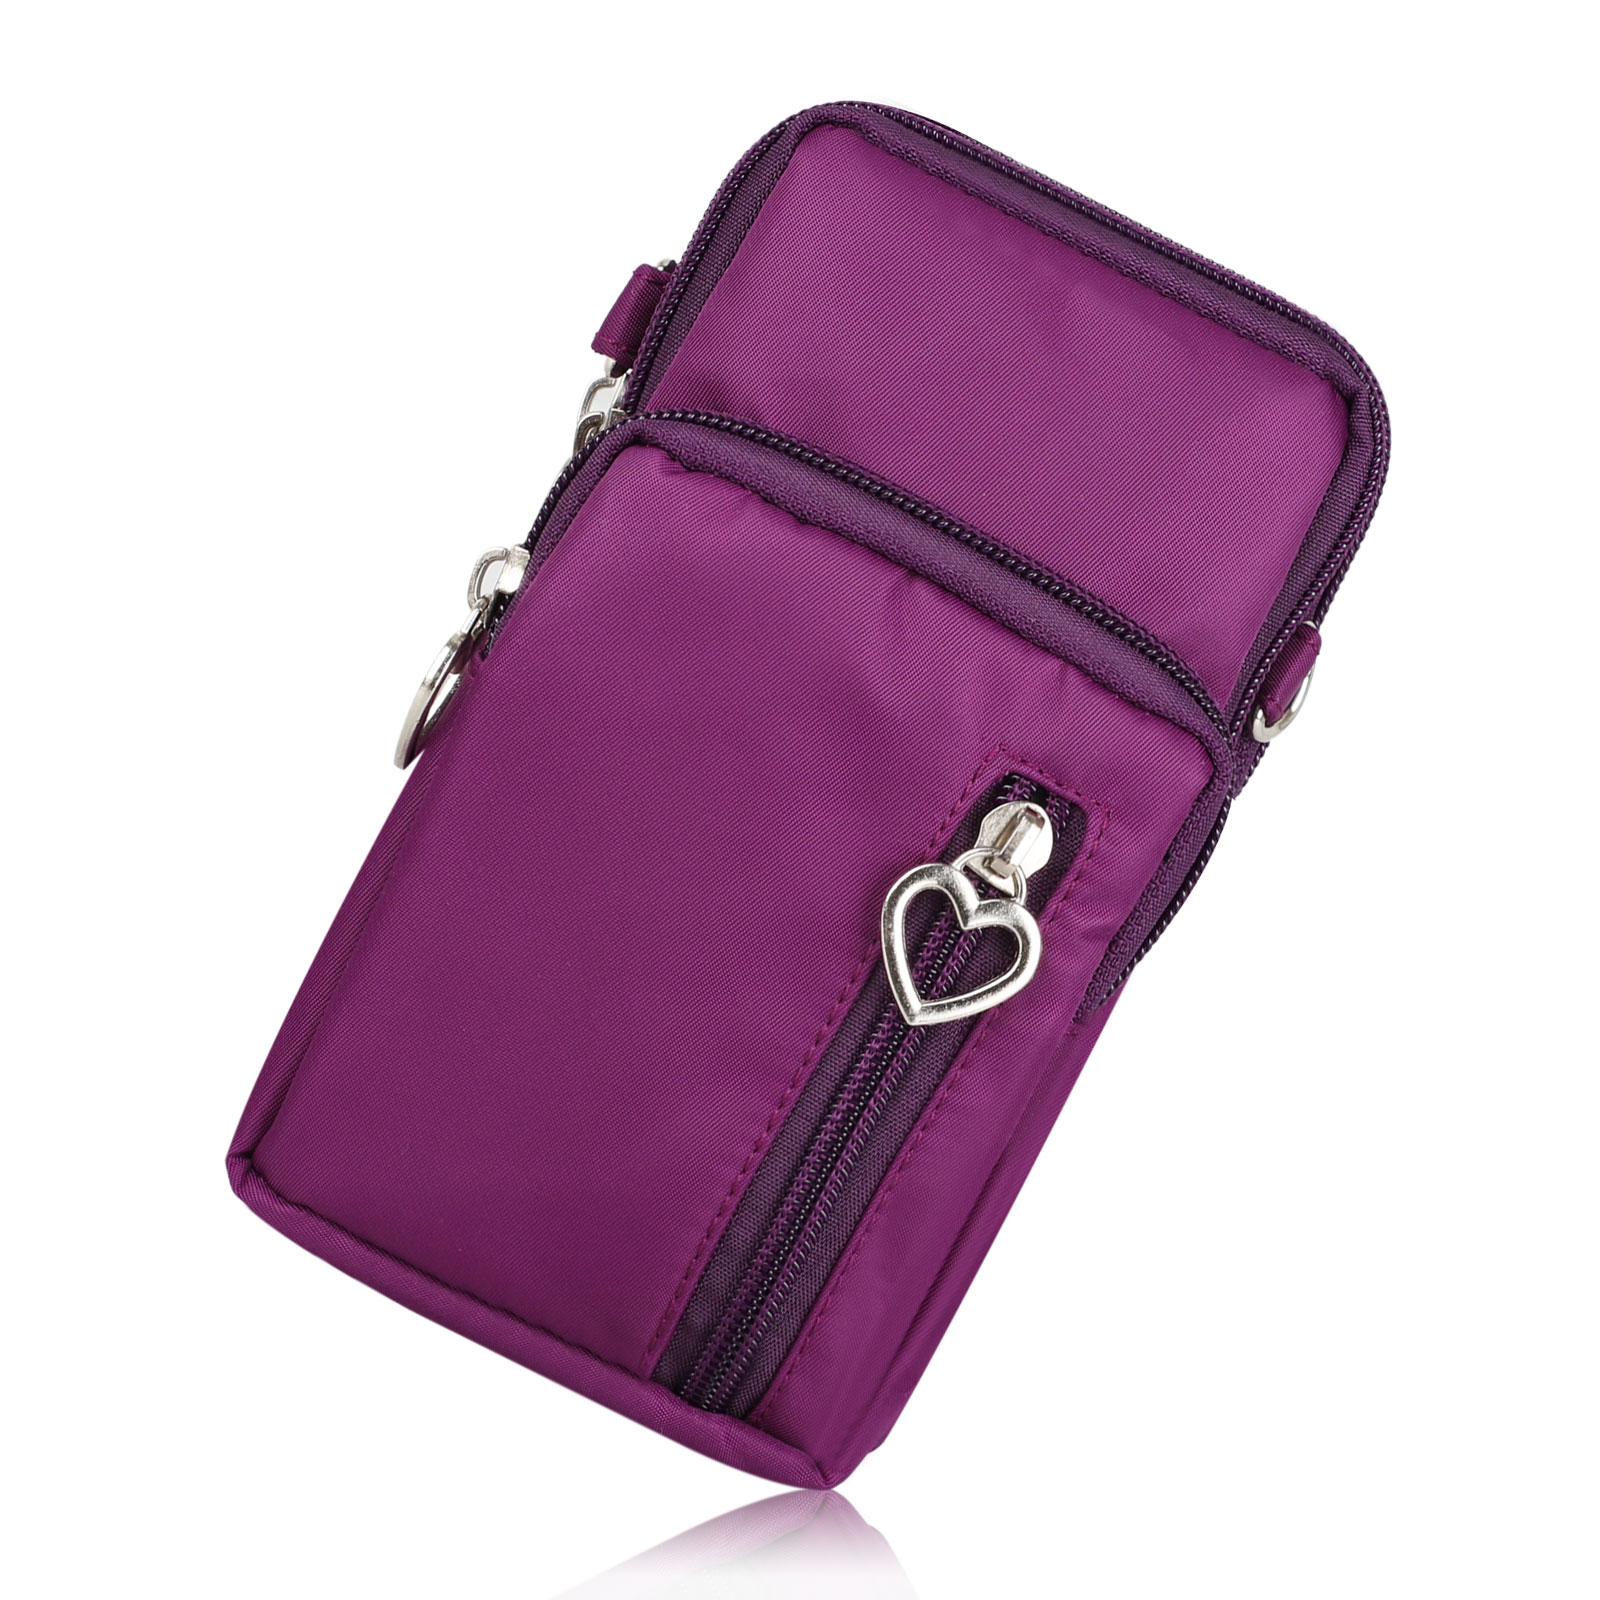 US-STOCK-Mini-Cross-Body-Cell-Phone-Shoulder-Strap-Wallet-Pouch-Bag-Purse-Hot thumbnail 11